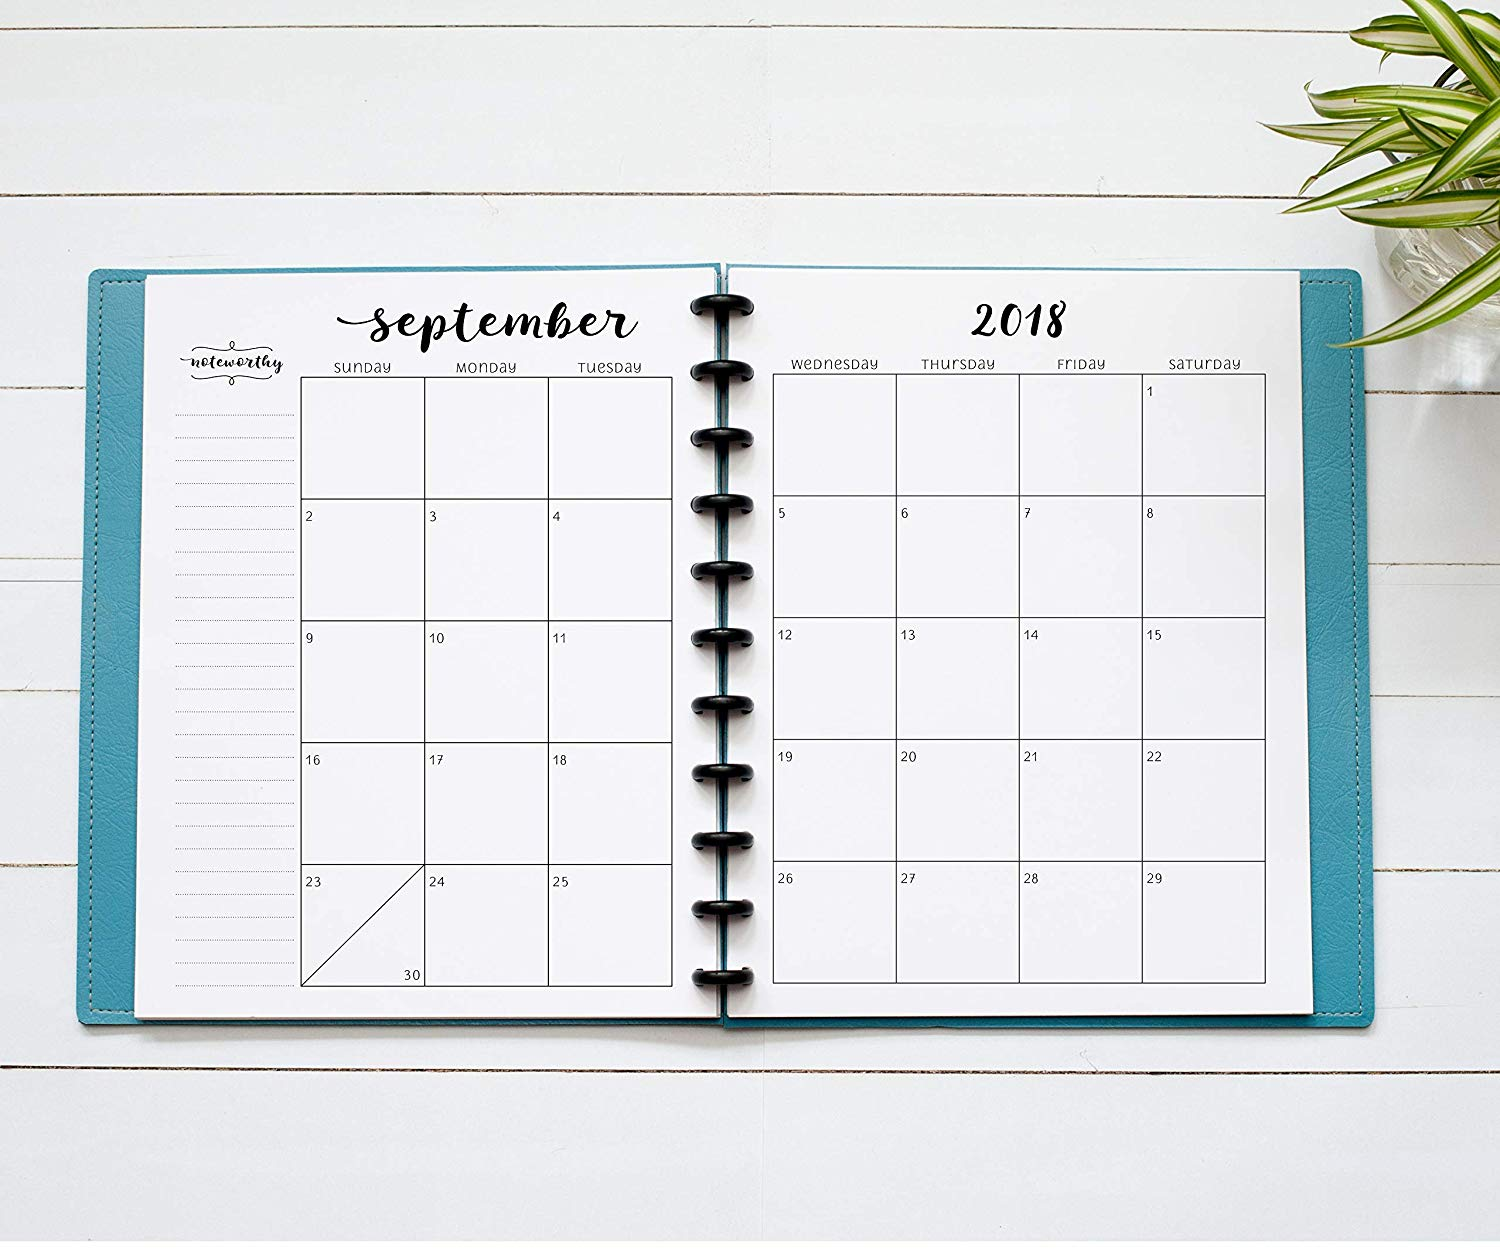 """2018-2019 Monthly Calendar for Disc-Bound Planners, 11-Disc Notebook, Fits Circa Letter, Arc by Staples, TUL by Office Depot, Letter Size 8.5""""x11"""" (Planner Not Included)"""